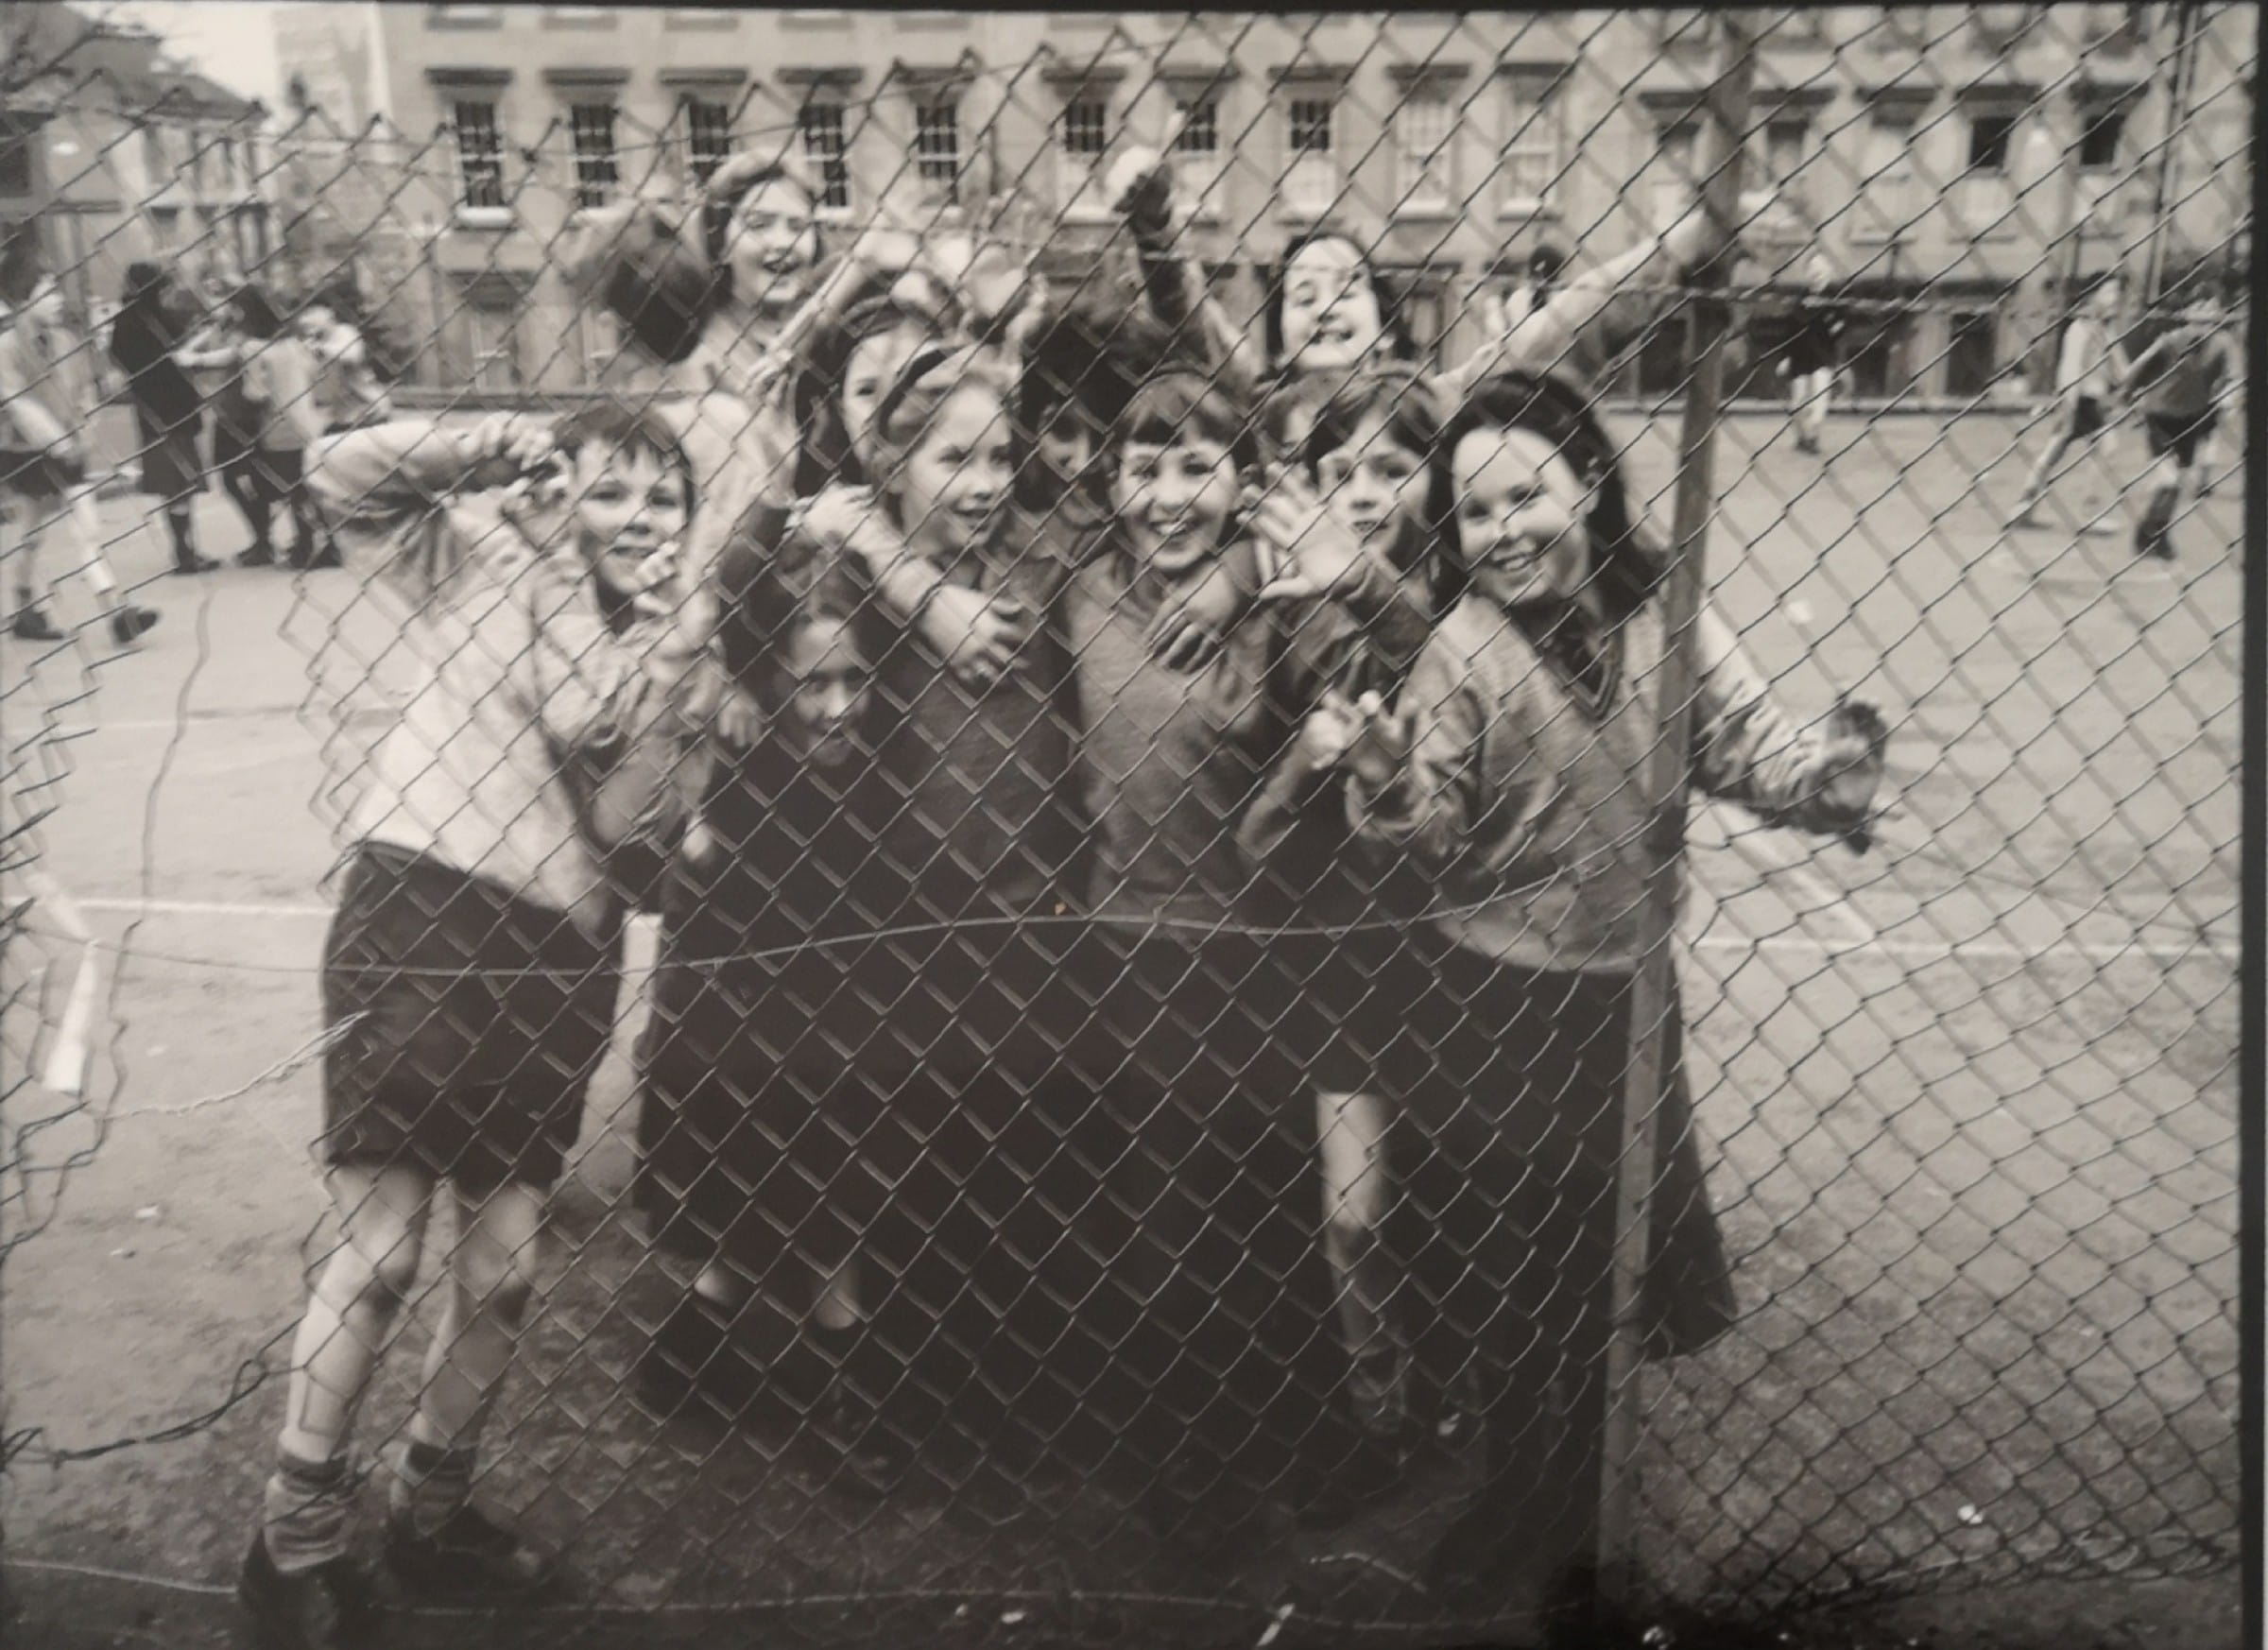 The kids who play on the hill (St Aloysius' College Primary pupils (Jasenko Rasol))